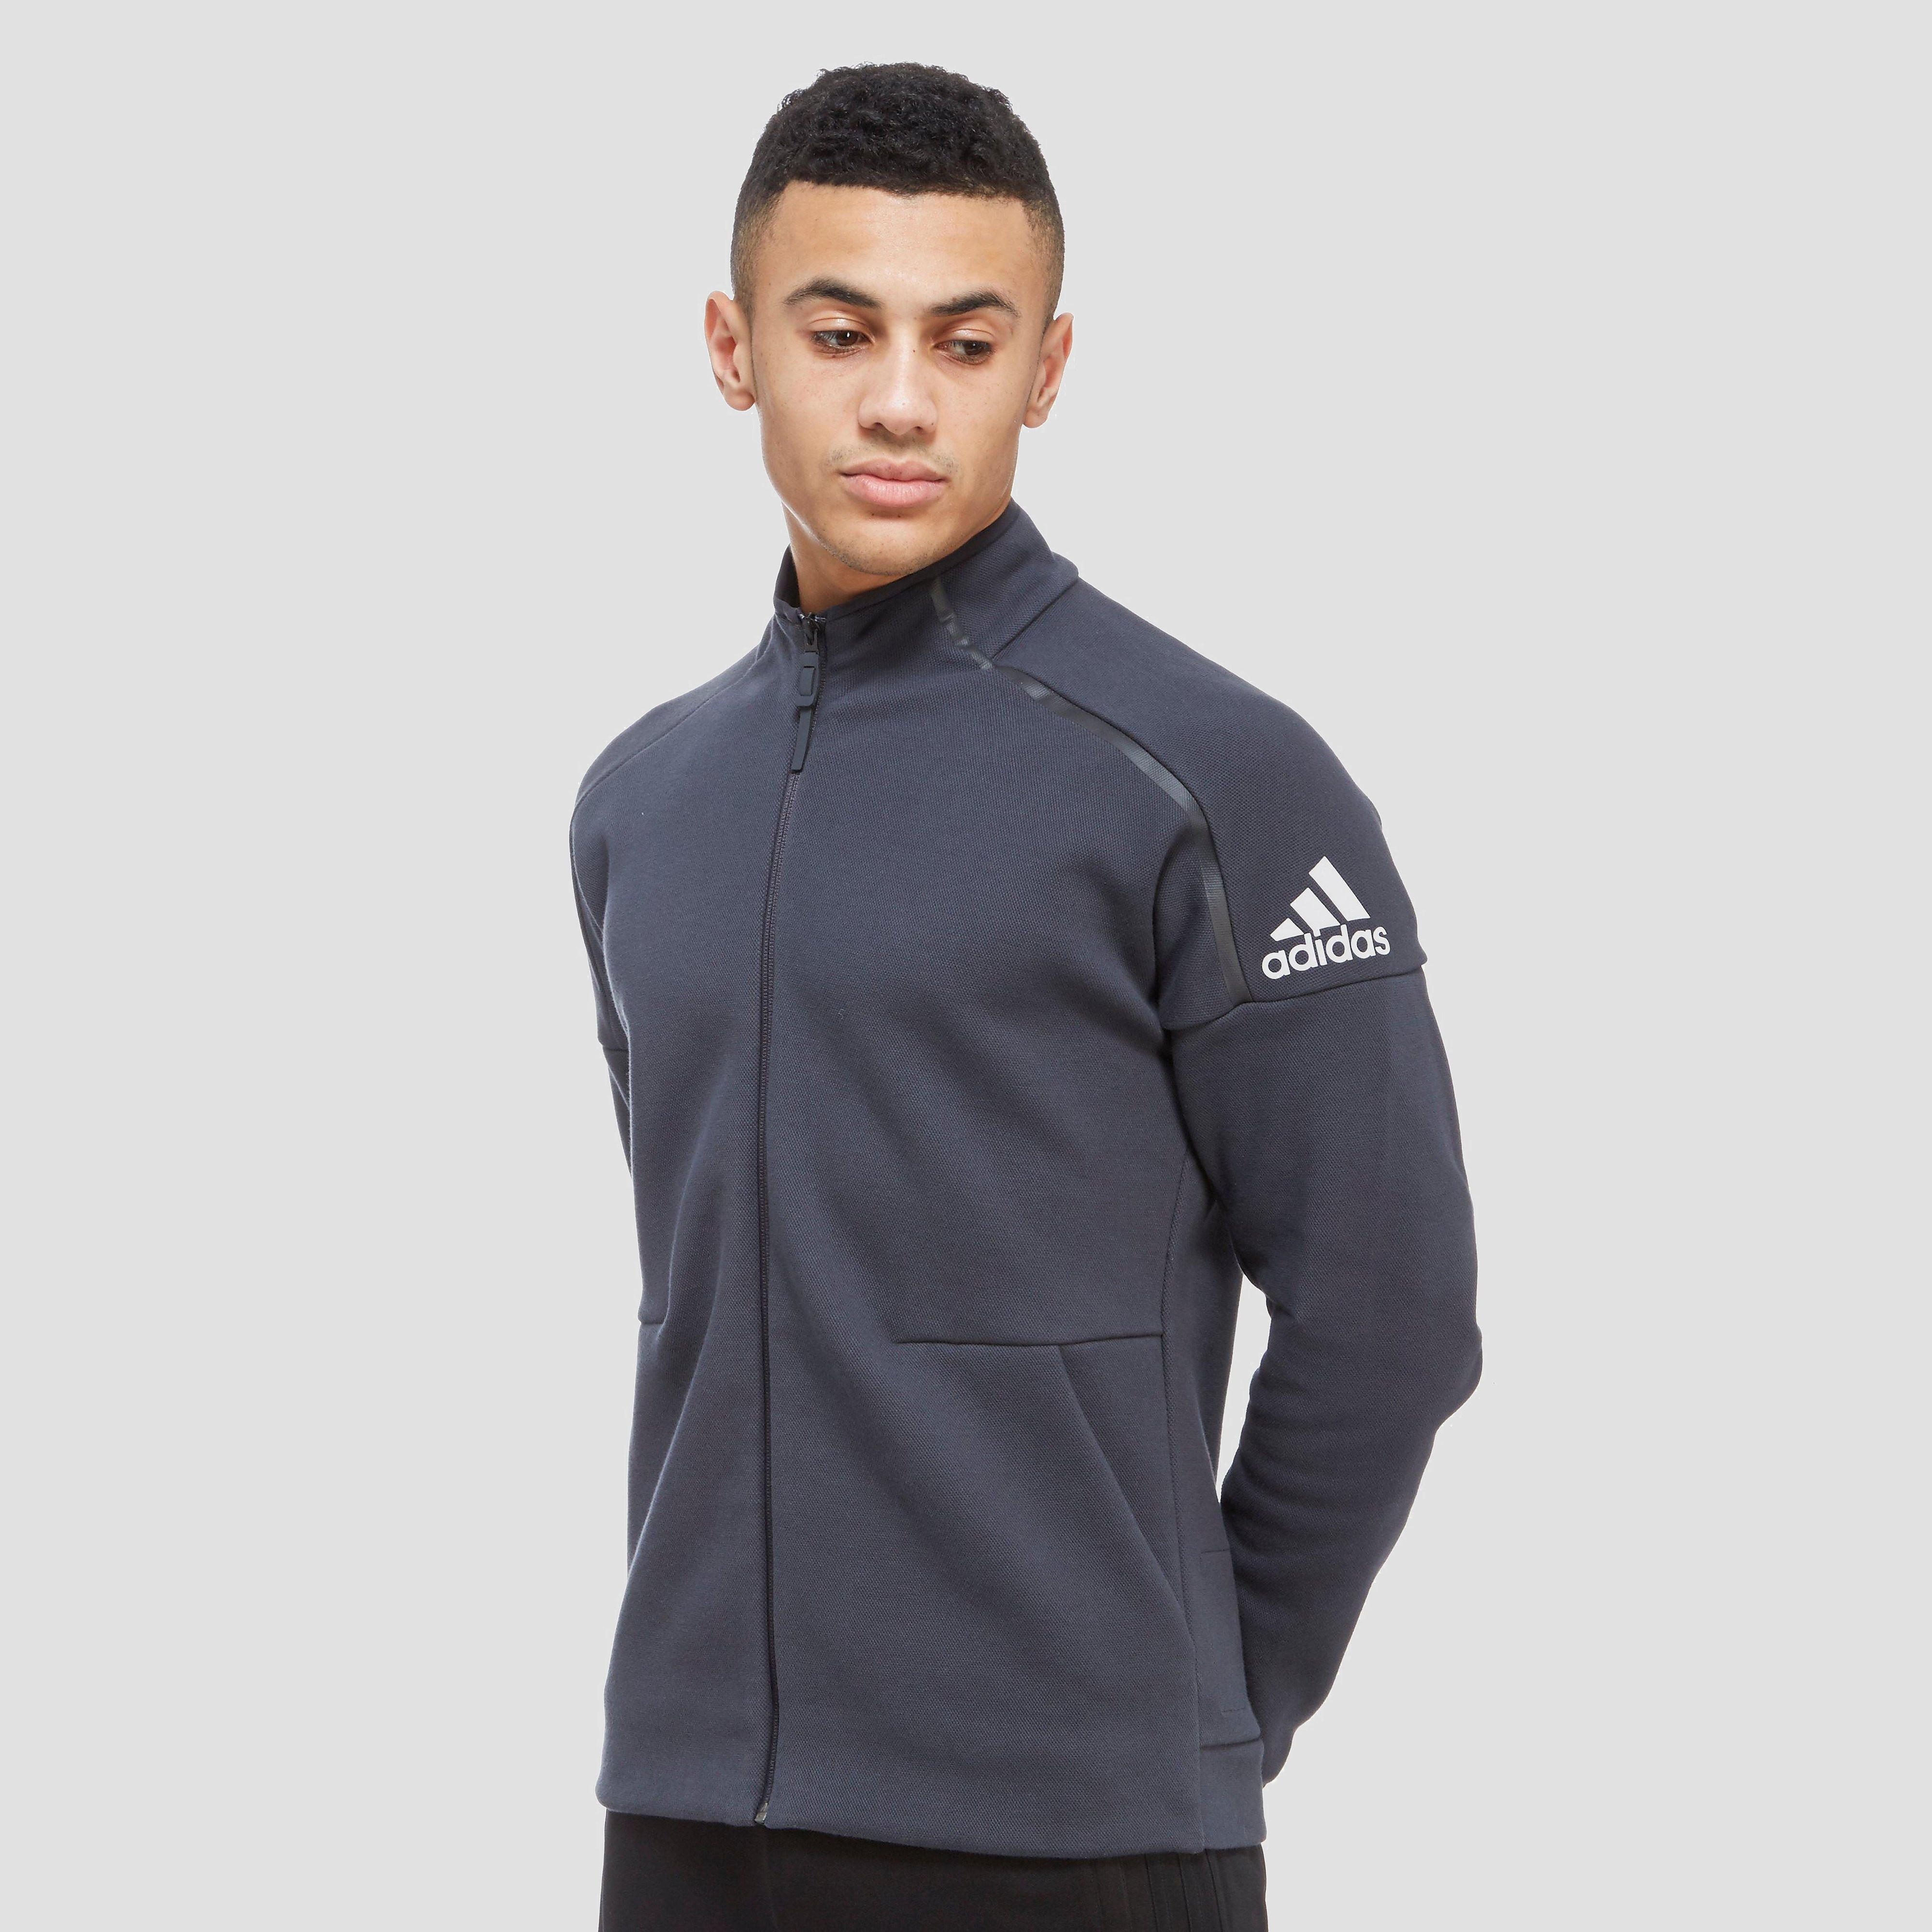 adidas Z.N.E Men's Track Top